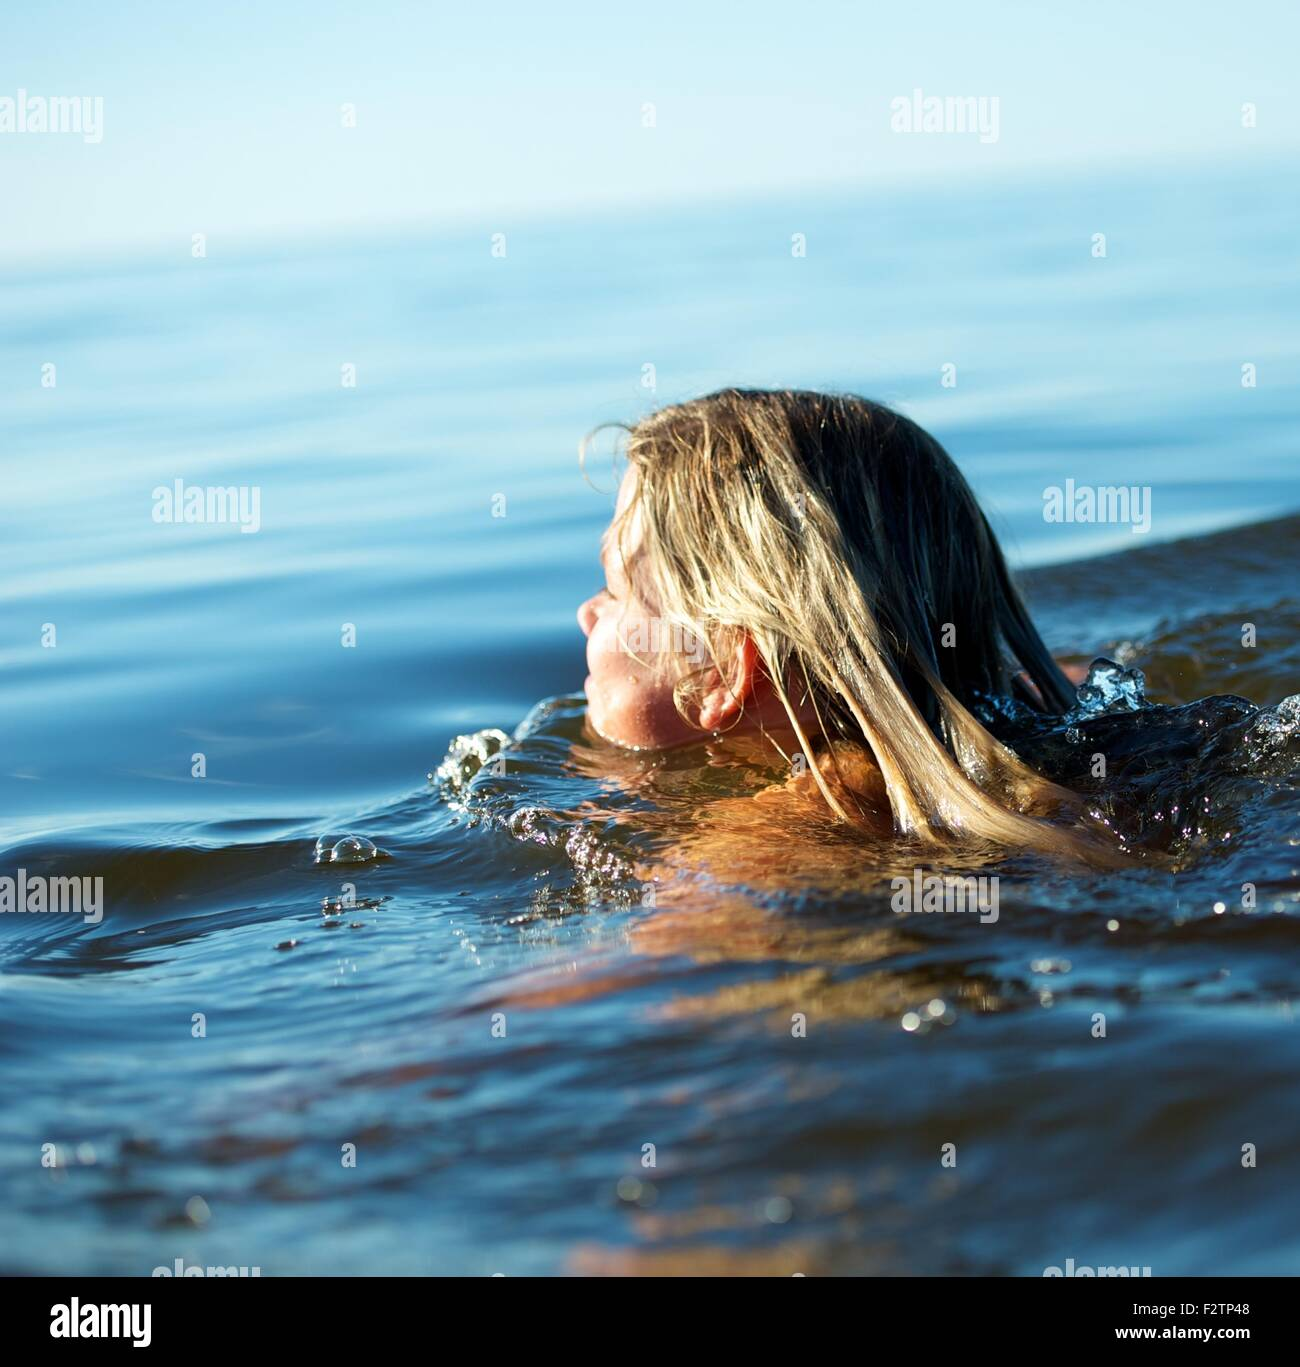 Girl swimming in the water - Stock Image